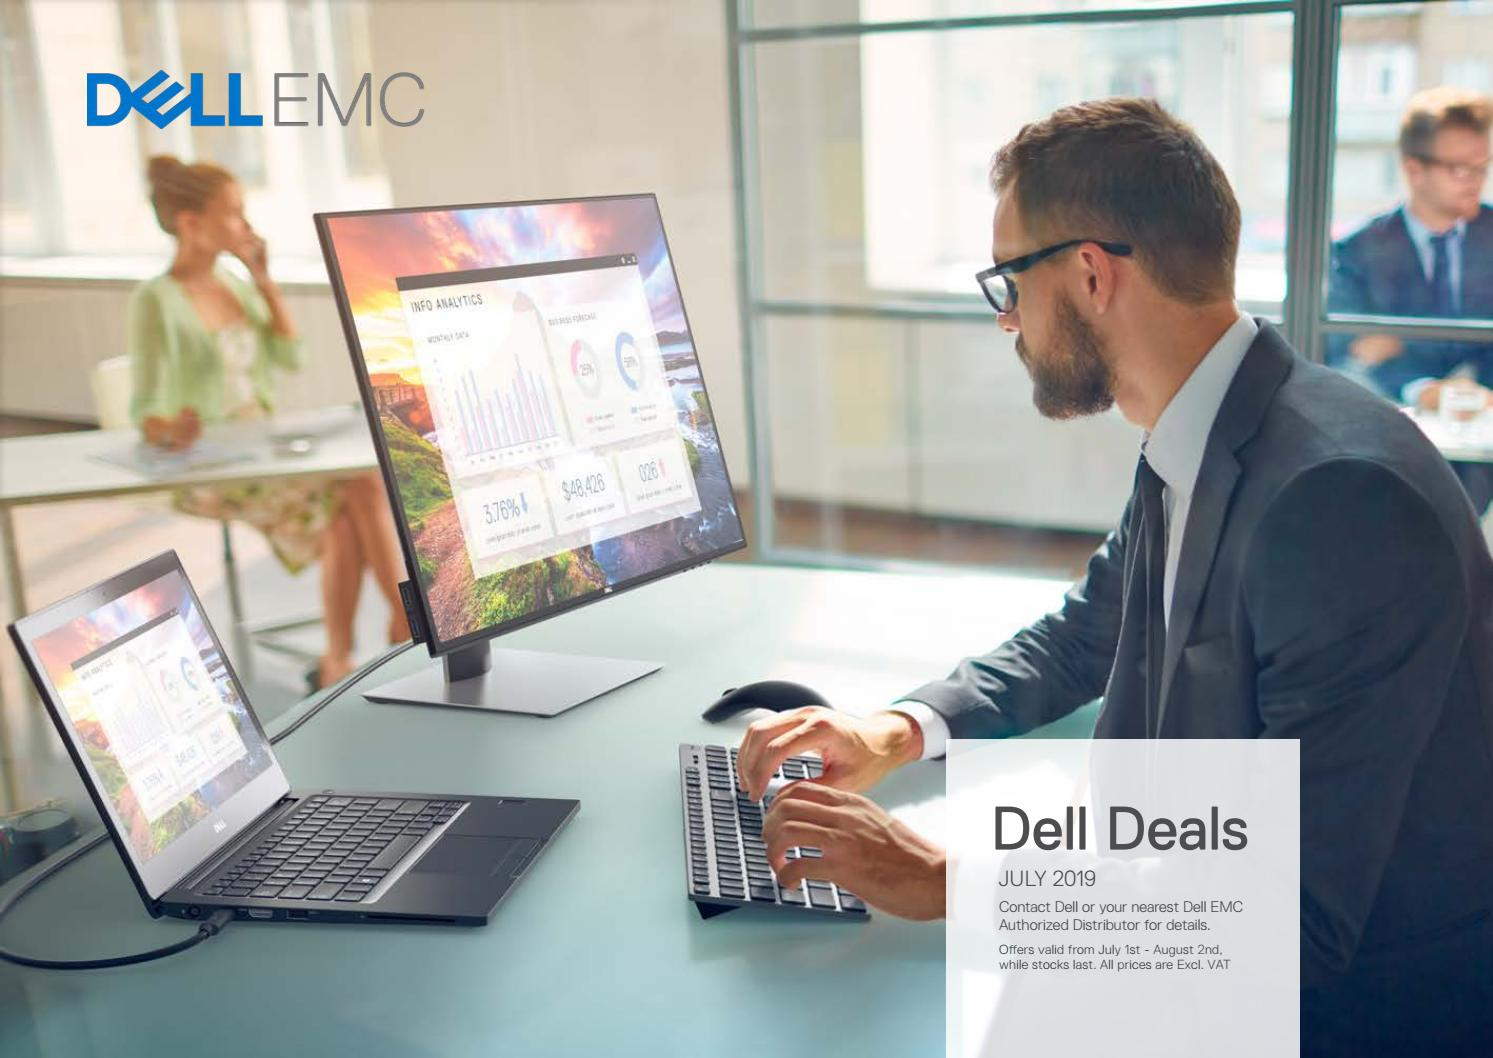 Dell Deals by viamen - issuu